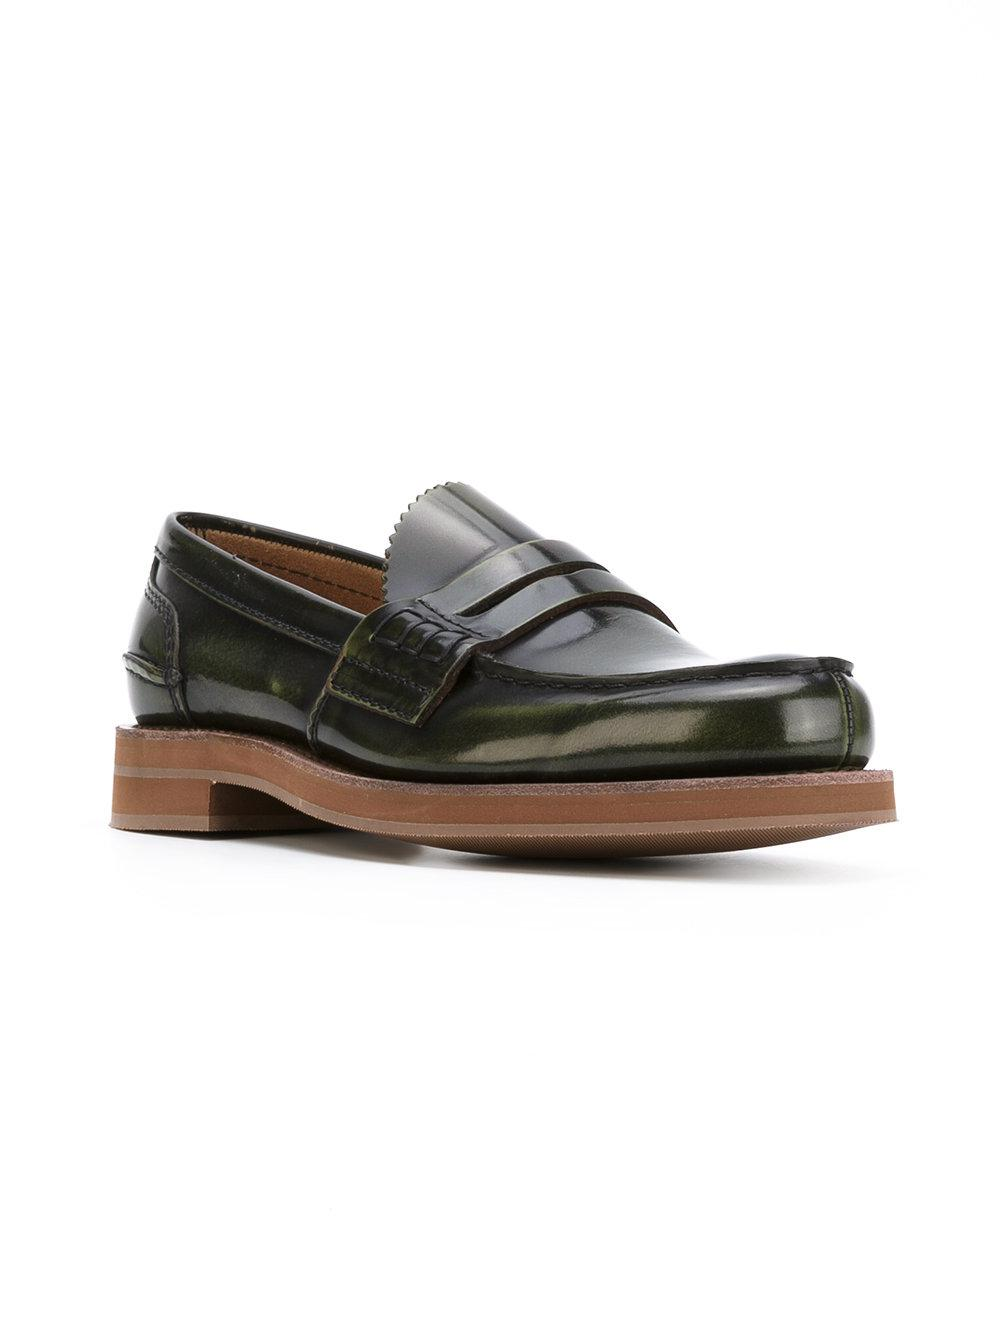 4eee007620d Church s Loafer Shoes in Green for Men - Lyst